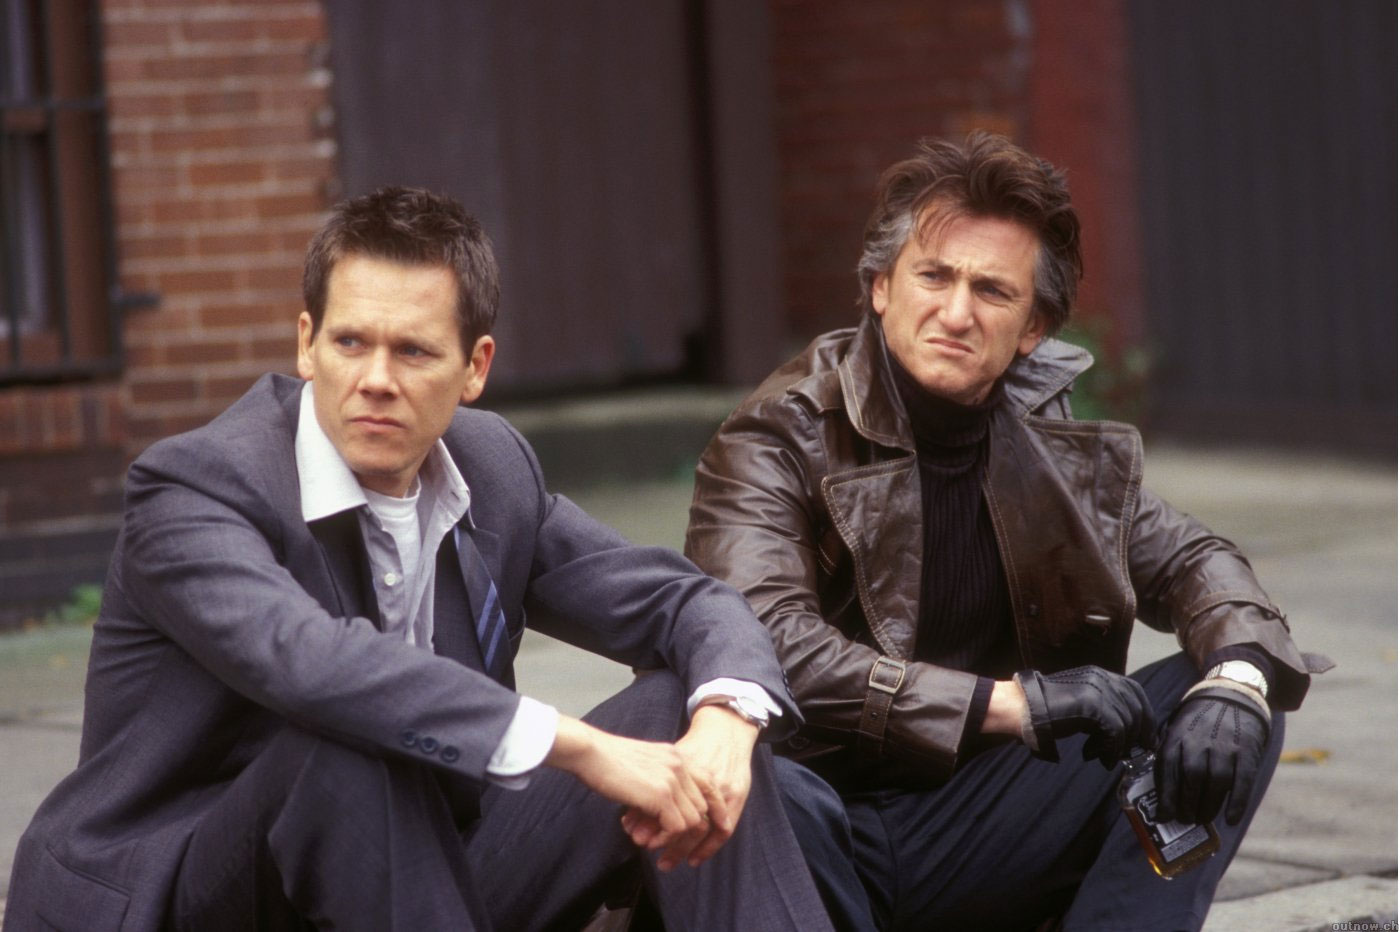 quick-fix-movie-to-watch-mystic-river-image.jpg